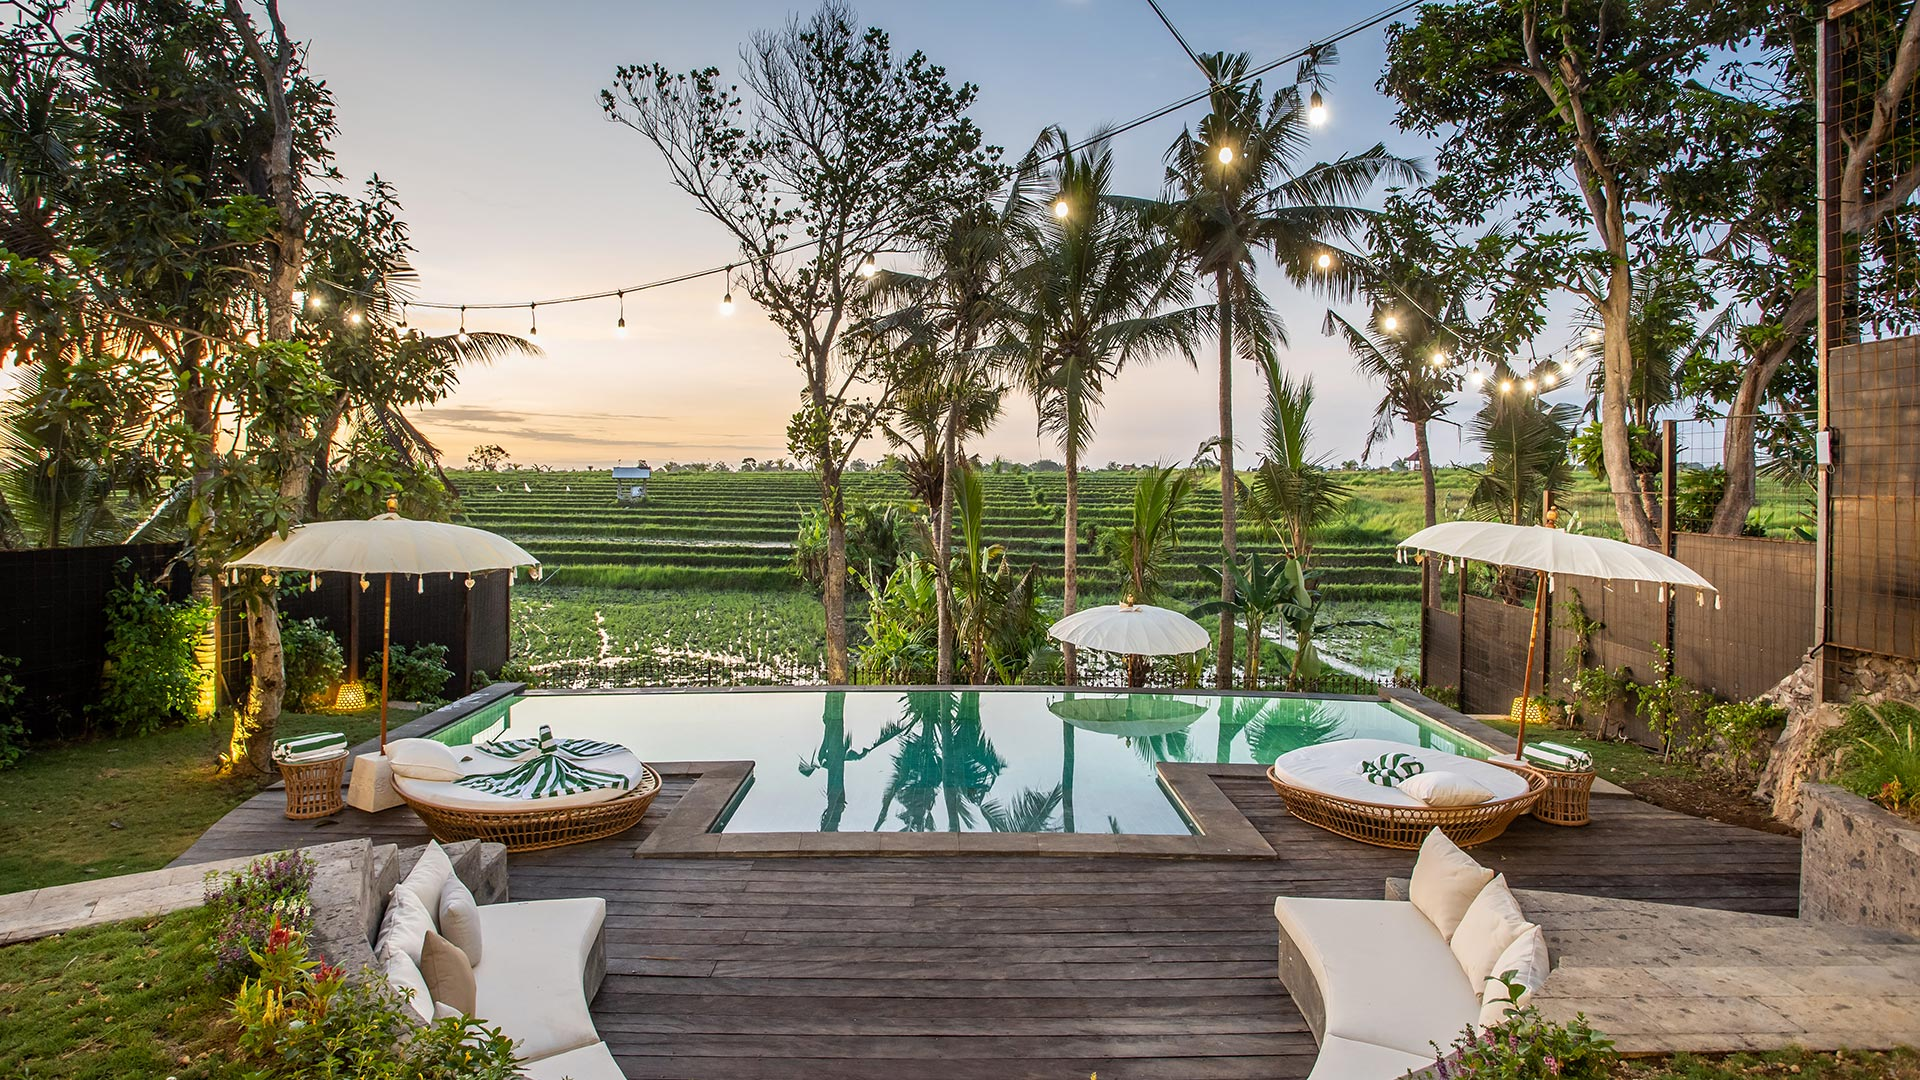 Rimba villas consist of 3 big villas located in Babakan village, Canggu, Bali. This is brand new classic European style...